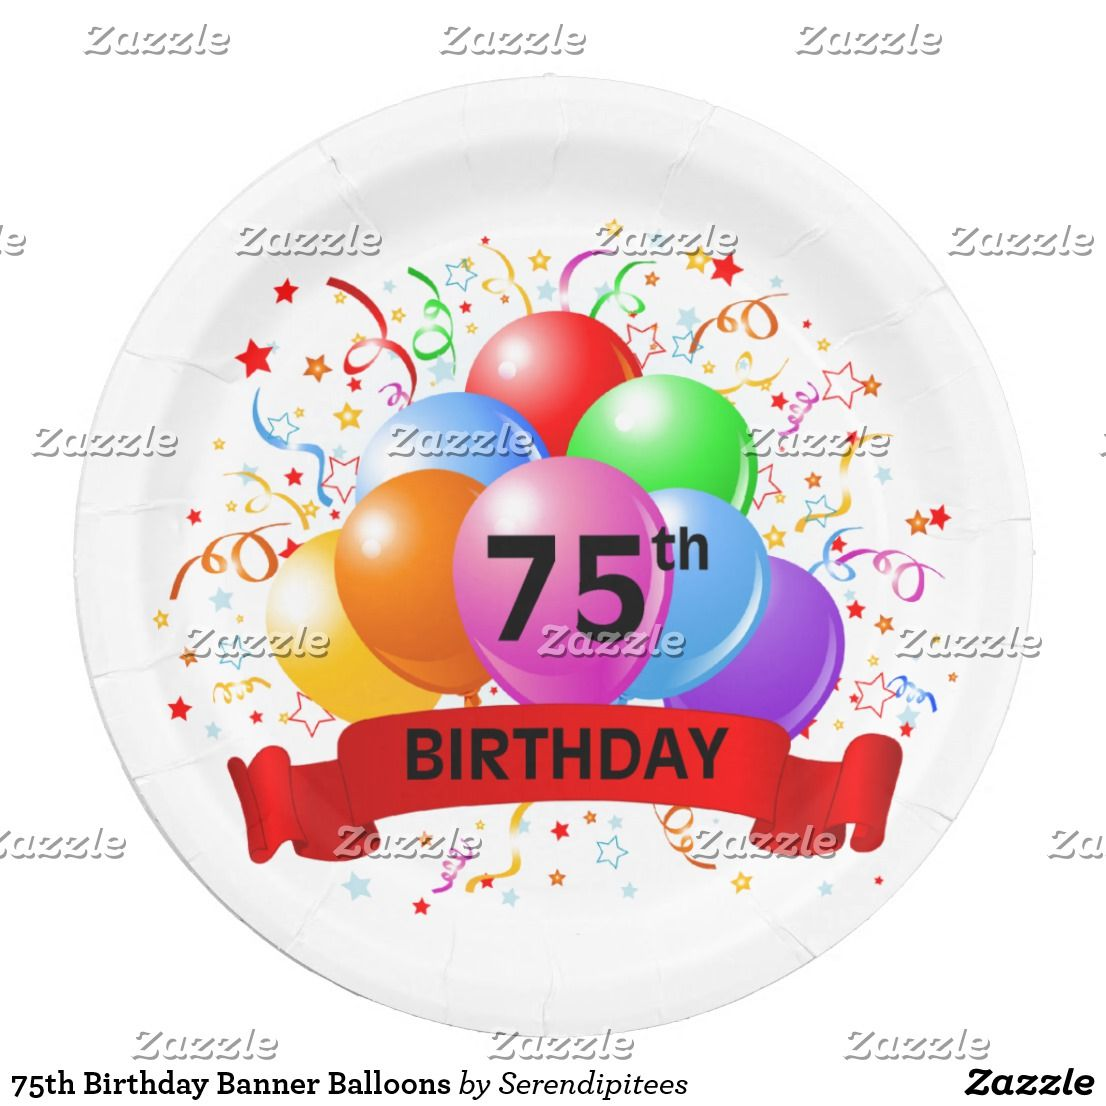 75th Birthday Banner Balloons